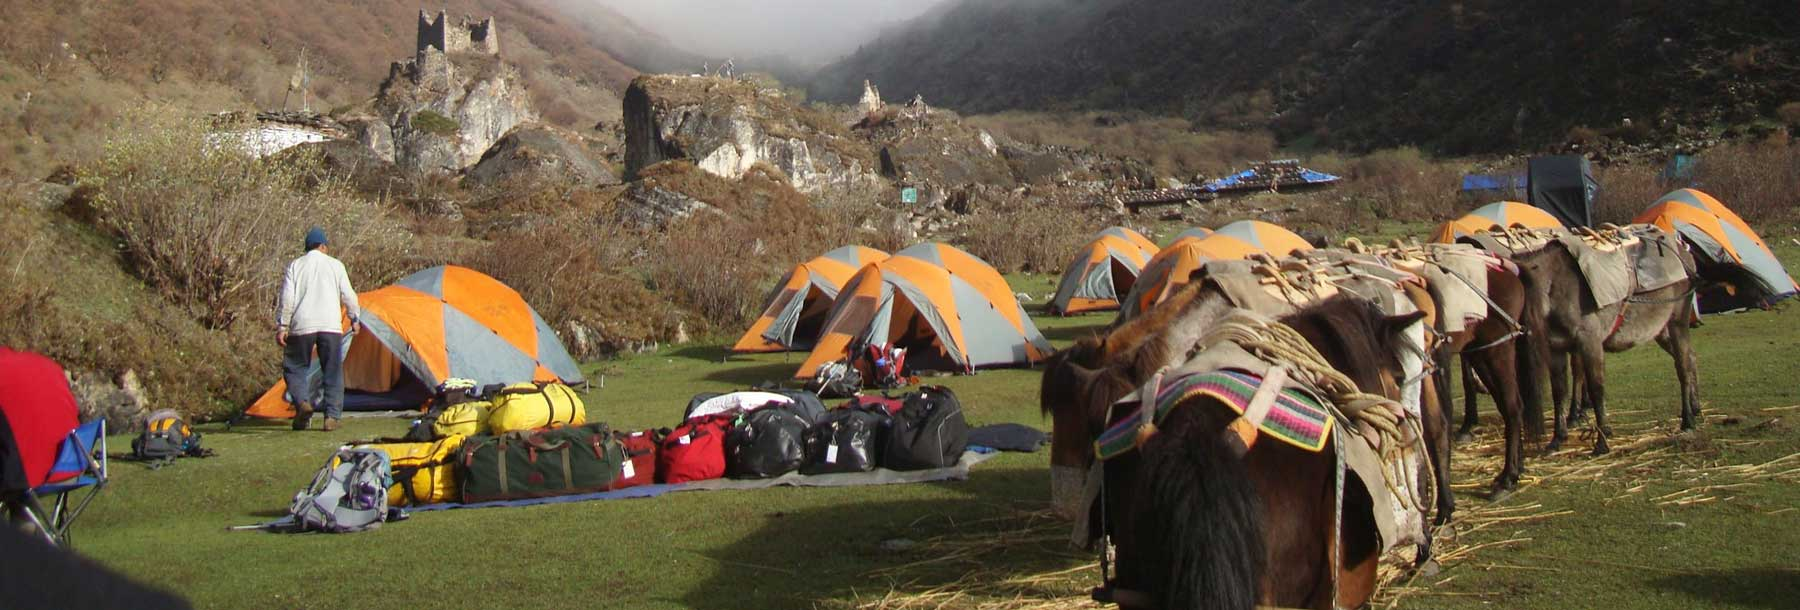 One of the campsite during Jomolhari Mountain Trekking, Bhutan.